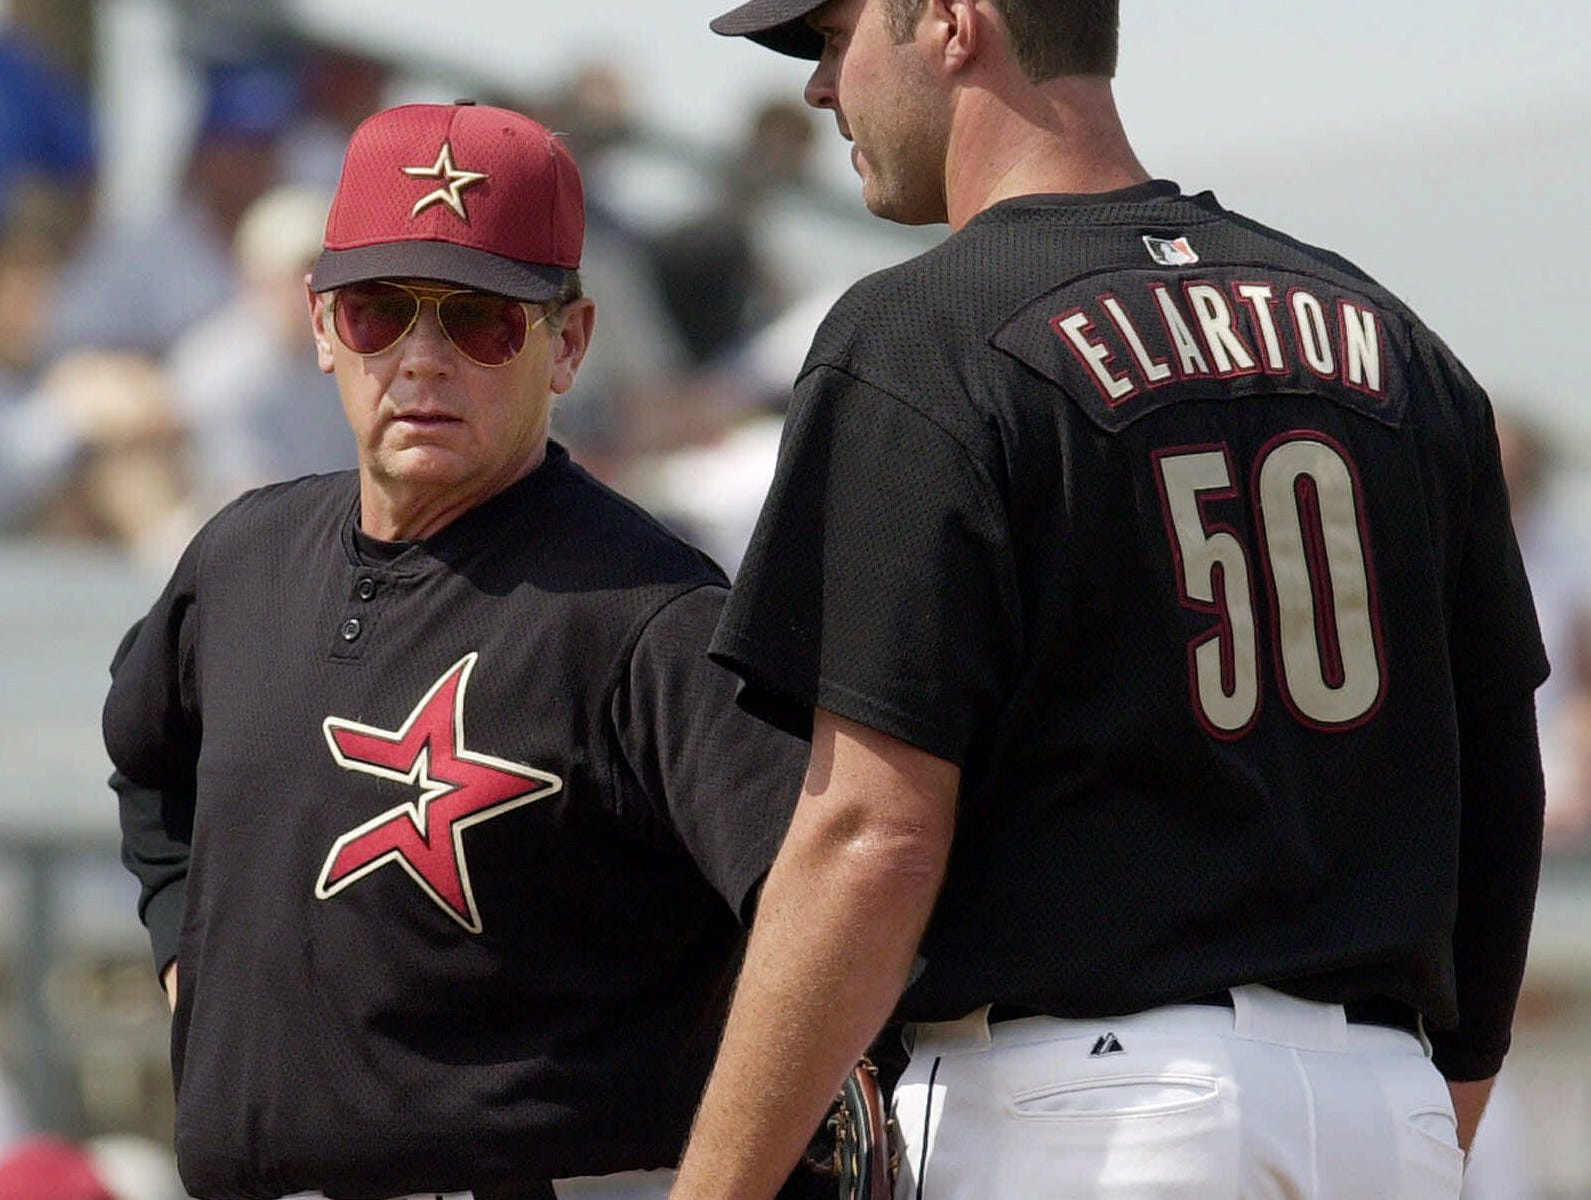 Houston Astros pitching coach Burt Hooton, left, talks to pitcher Scott Elarton during the third inning against the Pittsburgh Pirates, Friday, March 9, 2001, in Kissimmee, Fla. Elarton gave up six runs during the inning. The Pirates won 7-1. (AP Photo/Scott Audette)